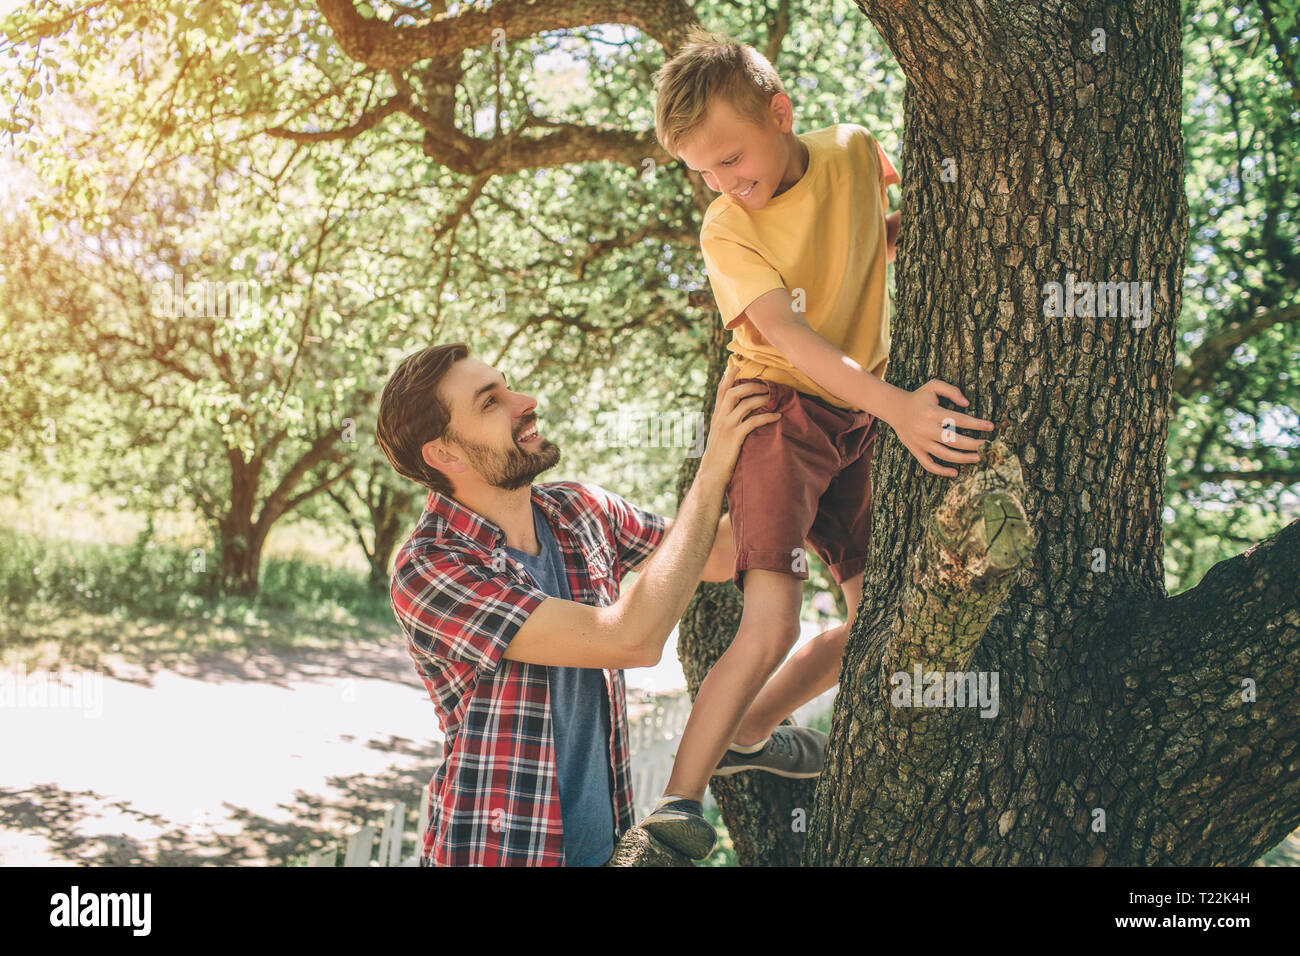 Father and son are playing with each other. Guy is supporting his child. Boy is looking down at father. They are smiling. Both of them are happy Stock Photo